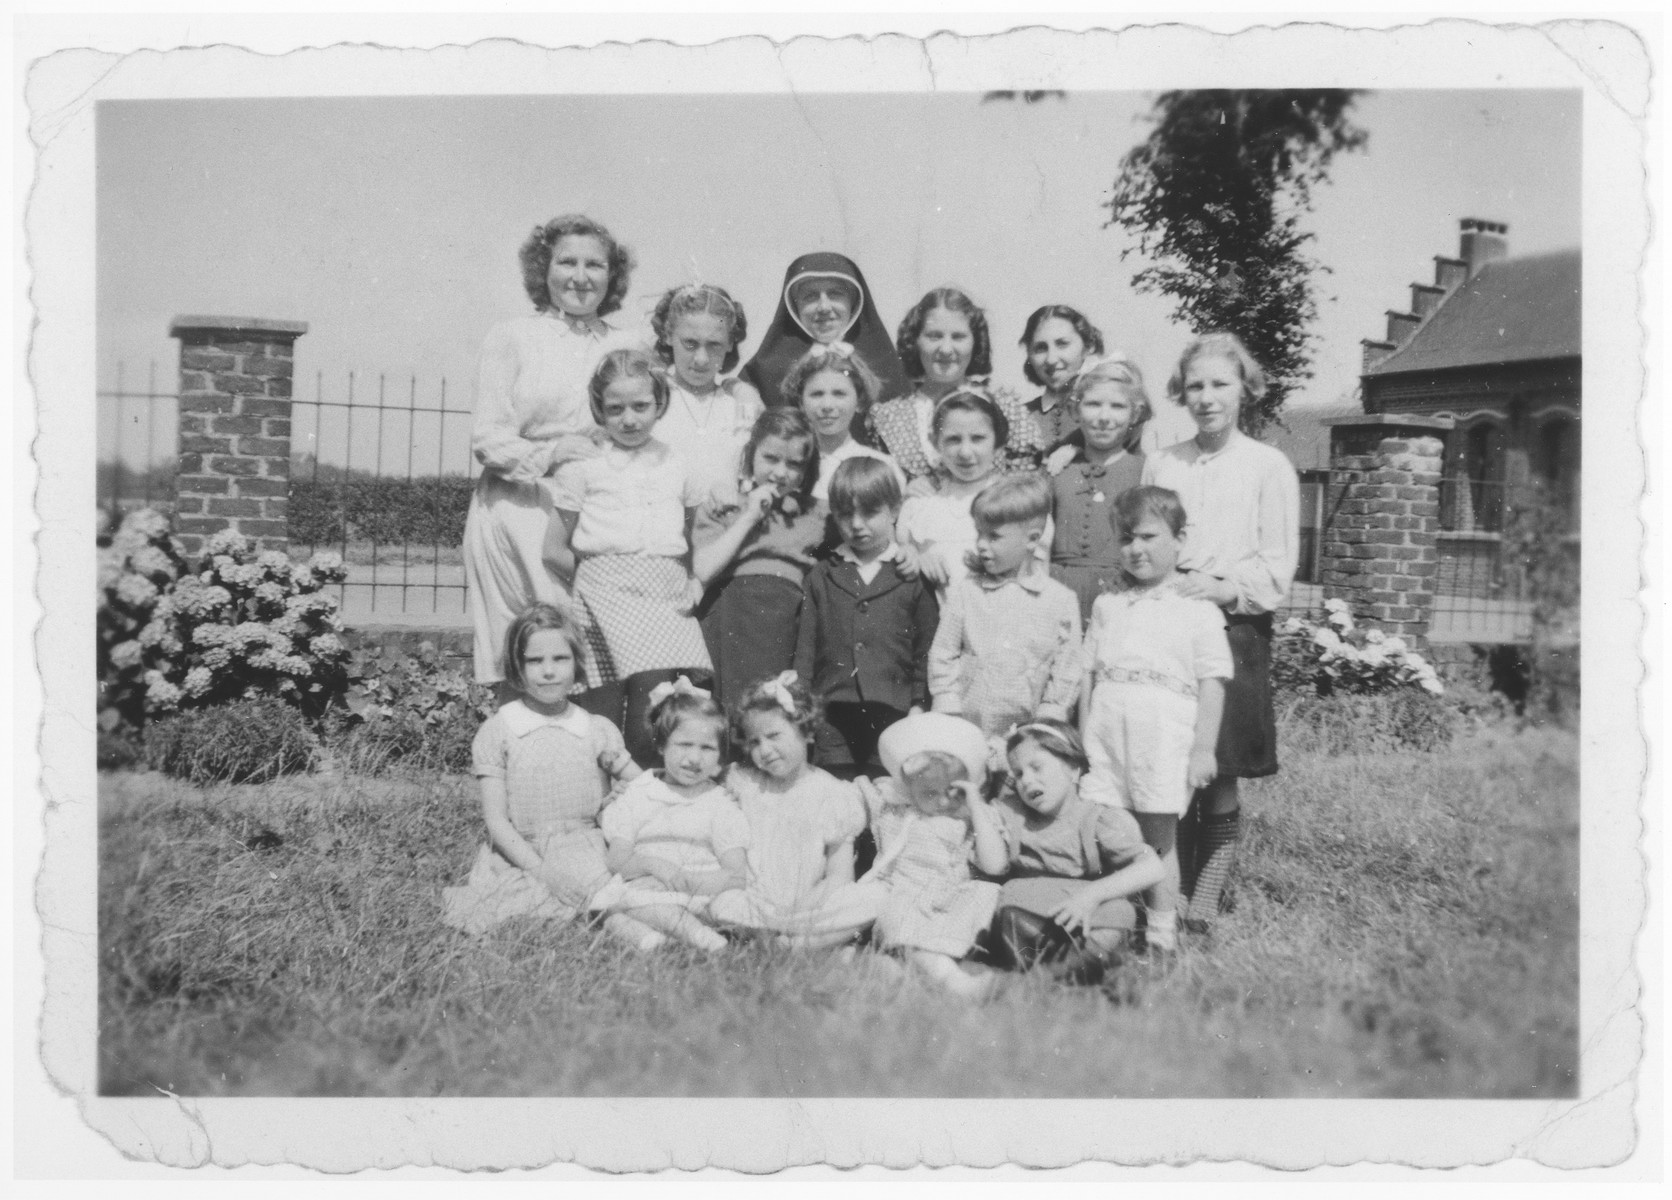 Sister Huberte poses with a group of children, many of whom are Jewish children in hiding, at the Soeurs de Sainte Marie convent near Braine-l'Alleud.  Ursula Klipstein is pictured in the top row, fourth from the left.